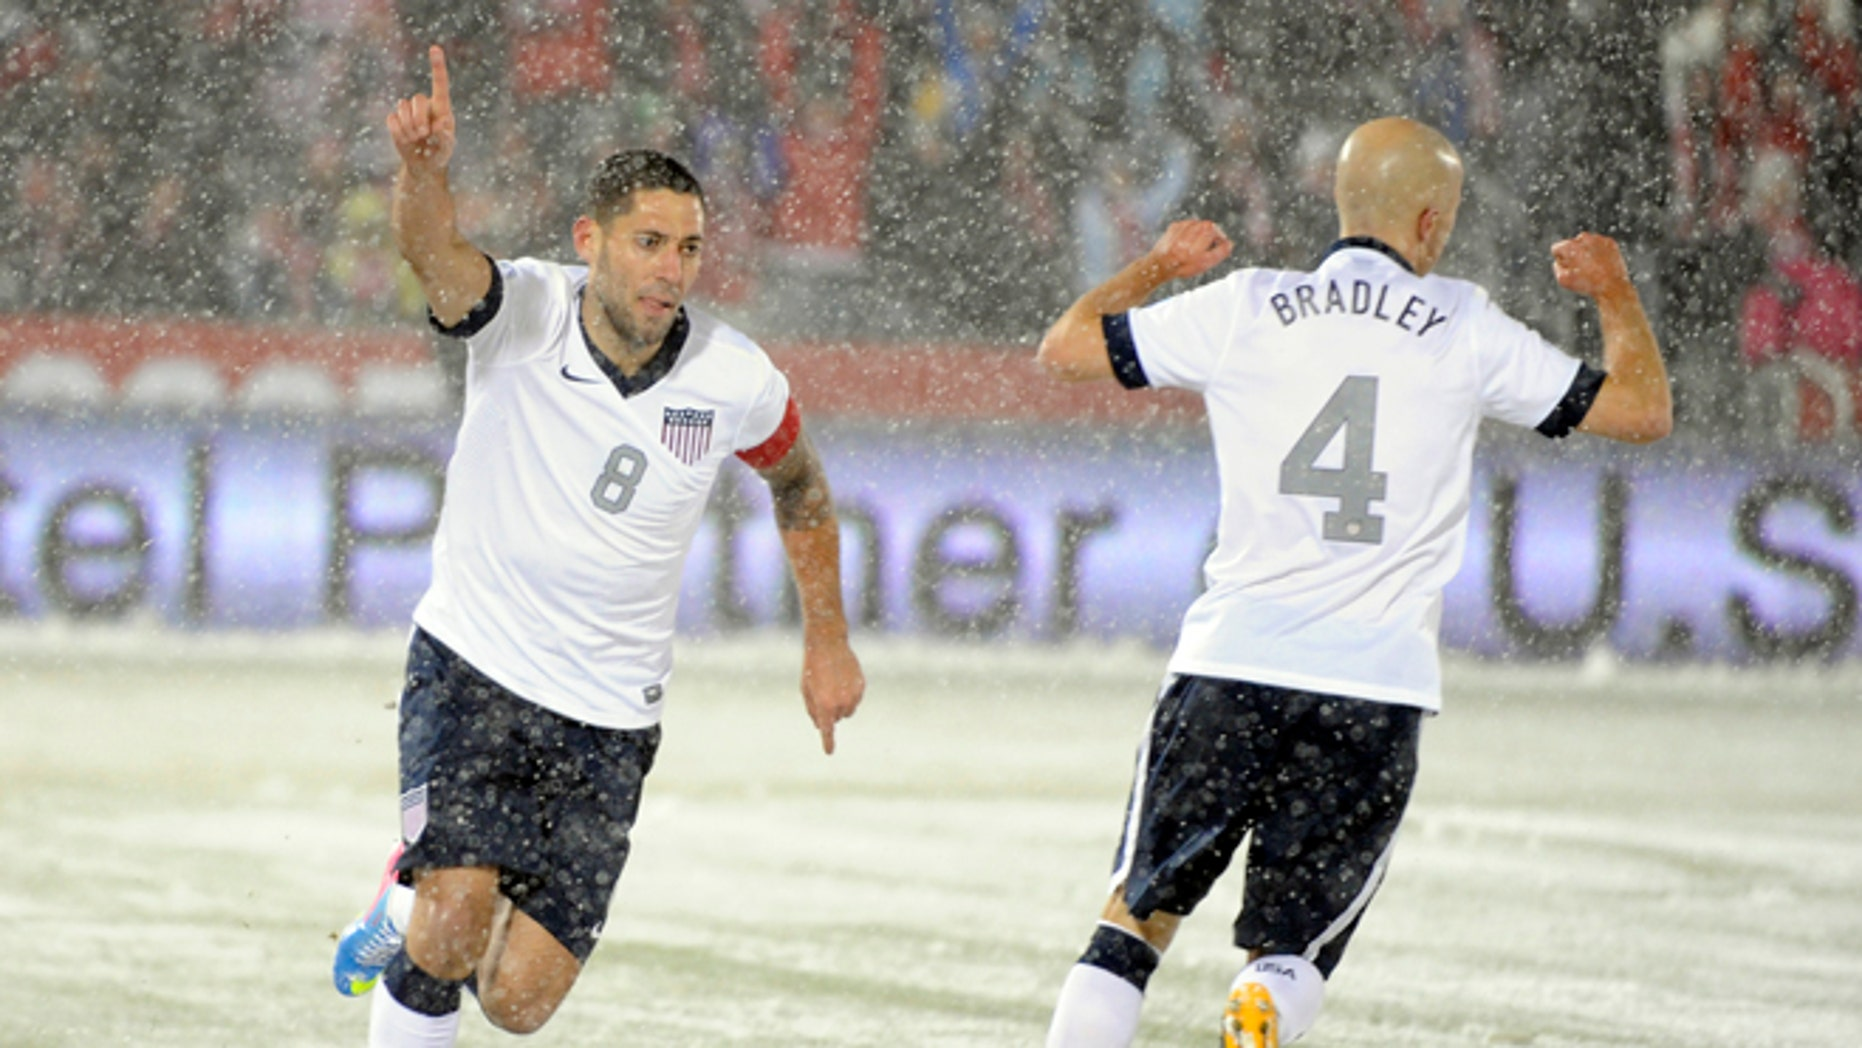 United States forward Clint Dempsey (8) celebrates a goal with Michael Bradley (4) against Costa Rica during the first half of a World Cup qualifier soccer match in Commerce City, Colo., Friday, March 22, 2013. (AP Photo/Jack Dempsey)